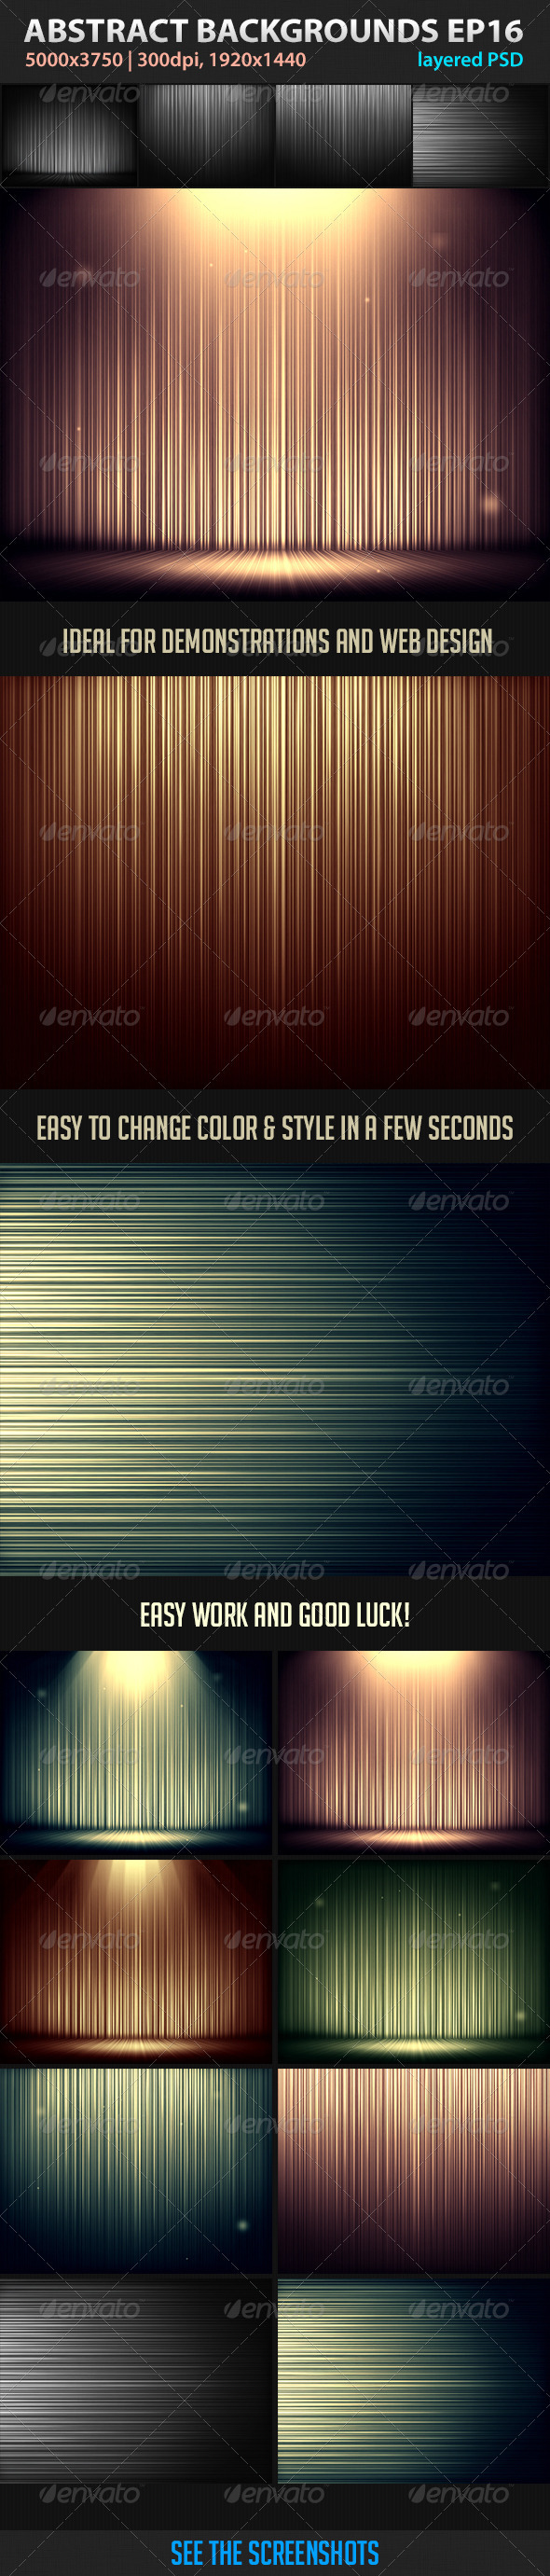 GraphicRiver Edit Abstract Backgrounds Episode 16 3448889